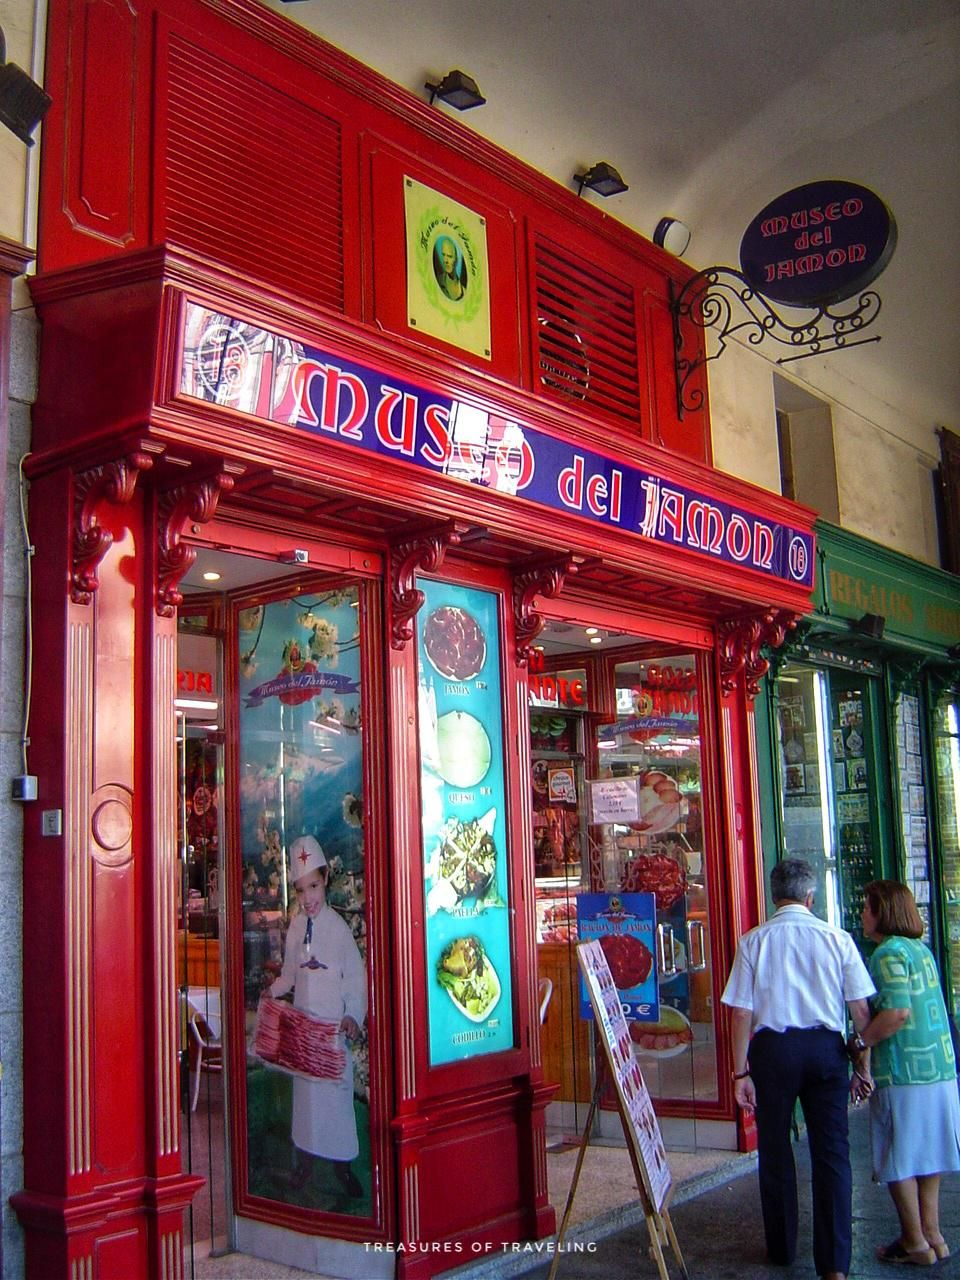 Museo Del Jamon Is An Institution In Madrid With All Types Of Hams Cheeses And Tapas With Sangria Wine Beer Or A Beverage Of Types Of Ham Sangria Sangria Wine